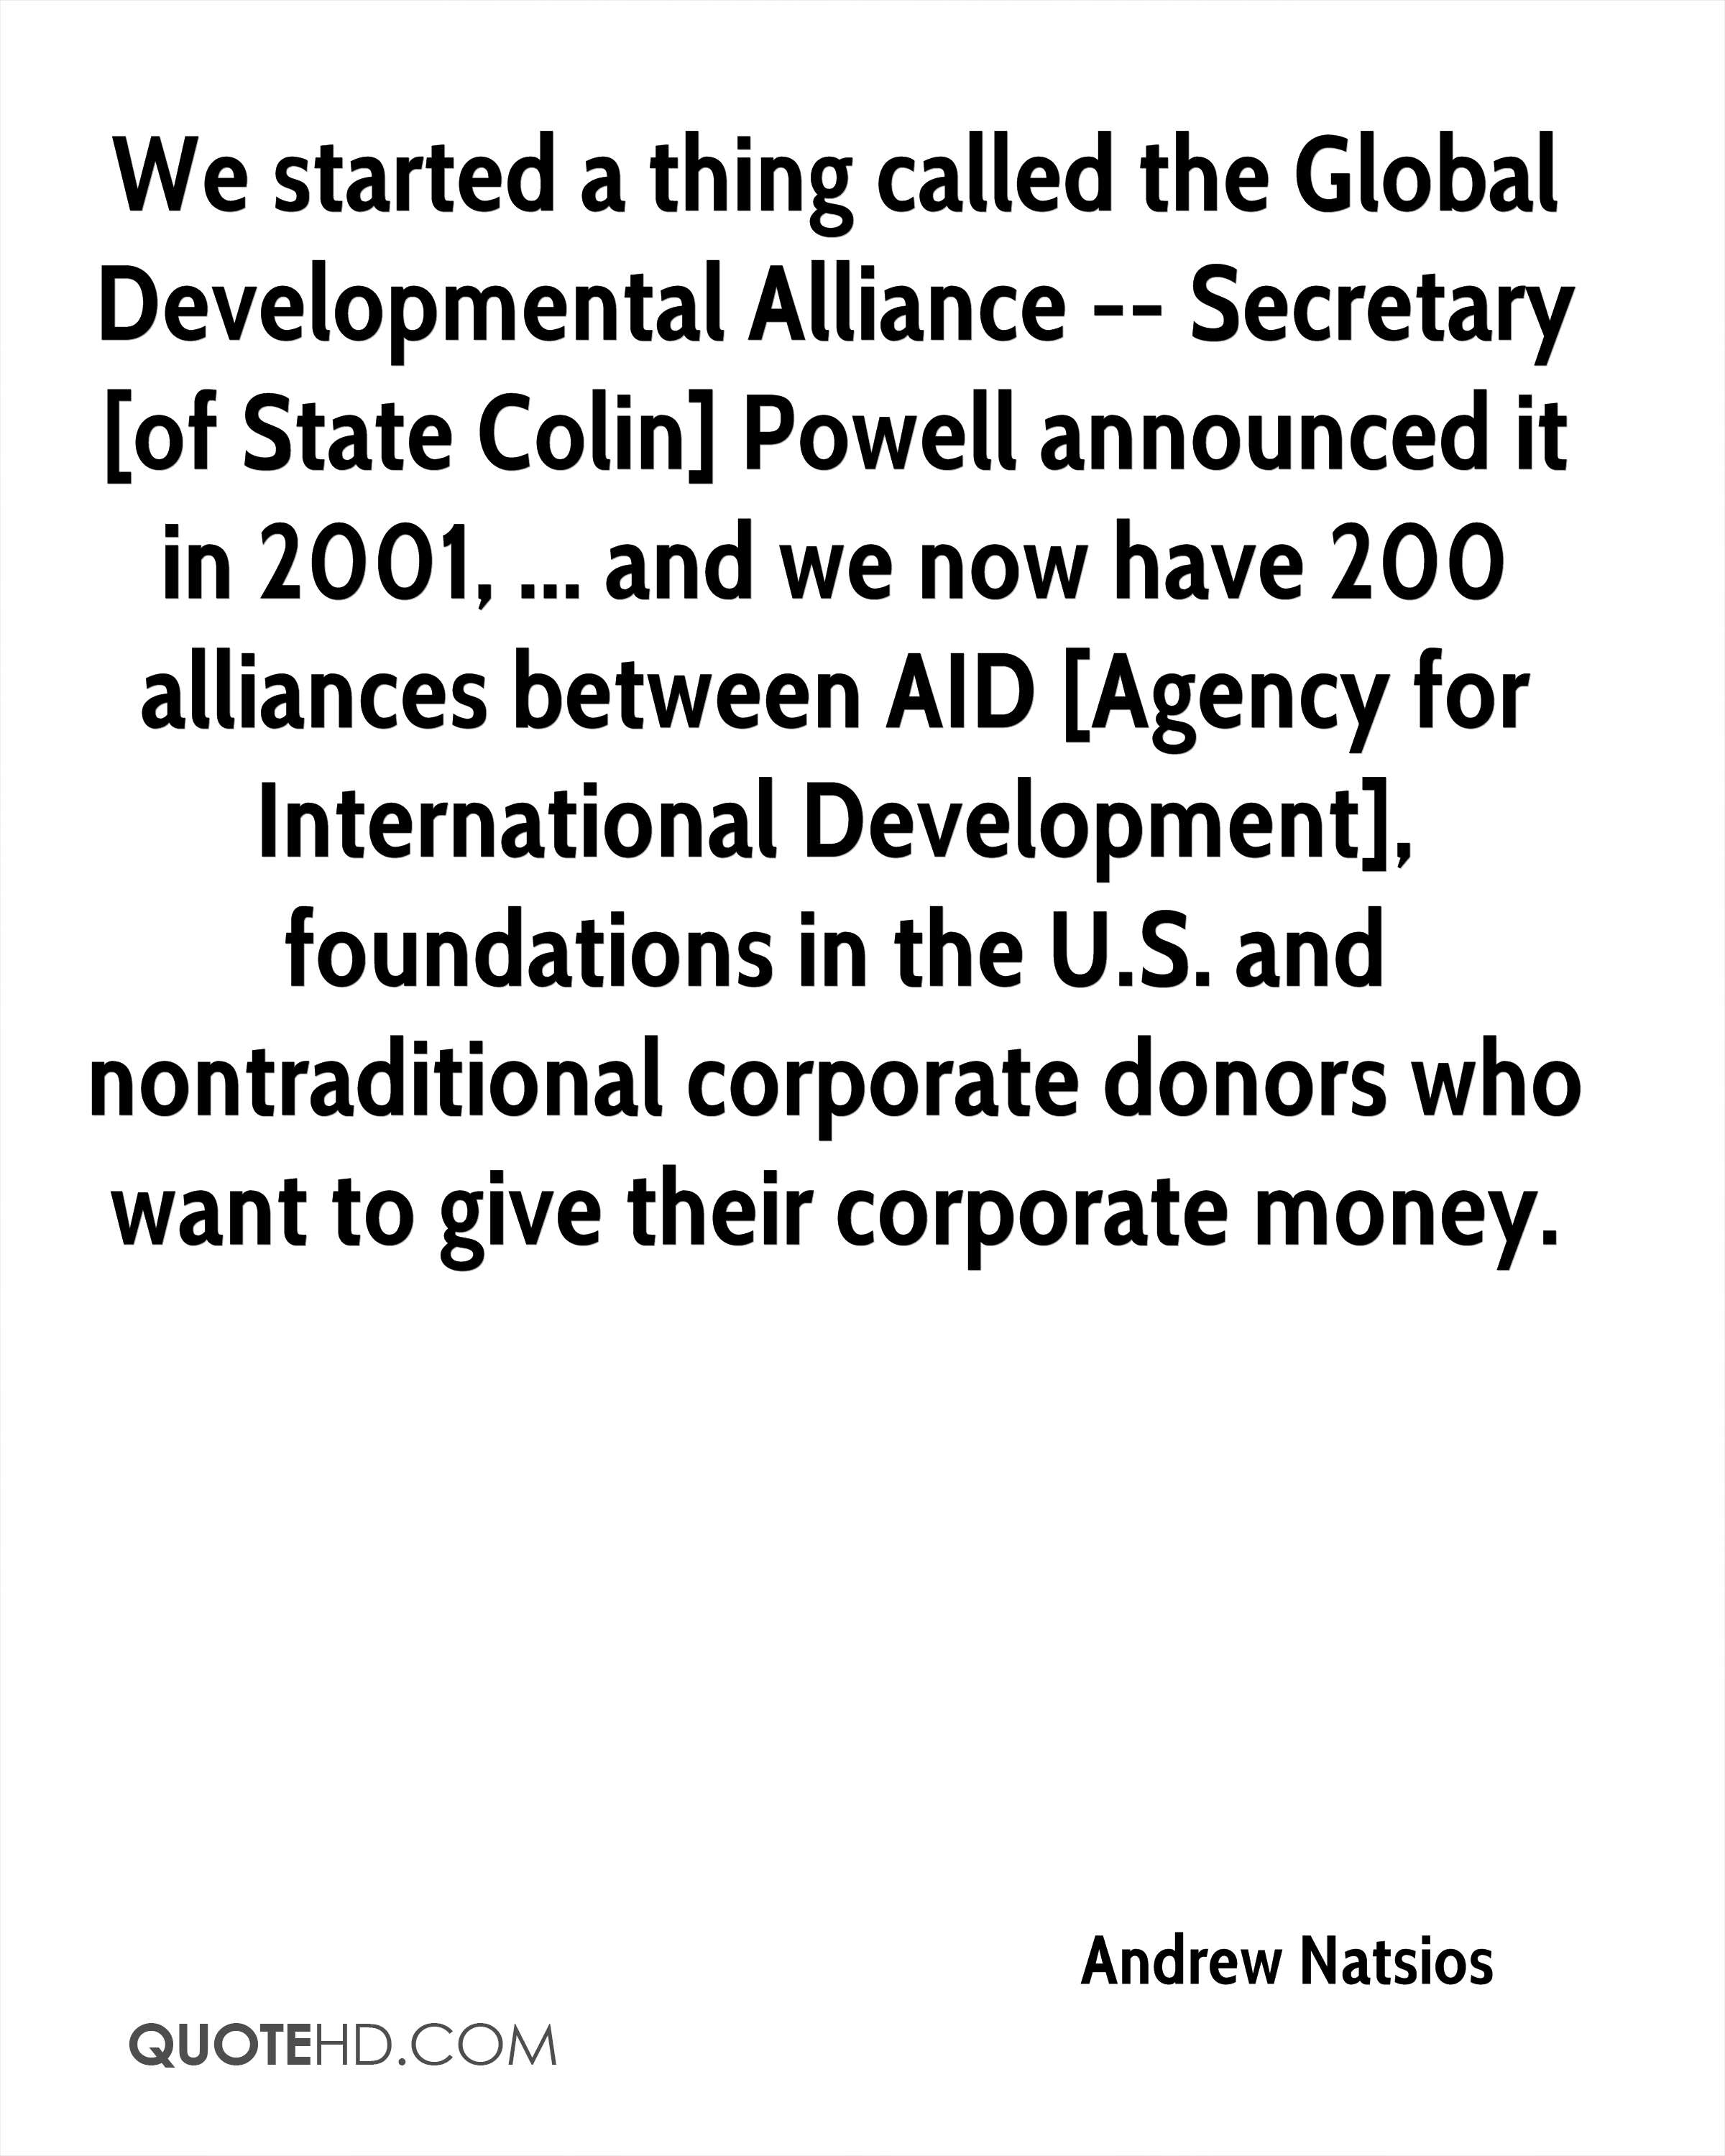 We started a thing called the Global Developmental Alliance -- Secretary [of State Colin] Powell announced it in 2001, ... and we now have 200 alliances between AID [Agency for International Development], foundations in the U.S. and nontraditional corporate donors who want to give their corporate money.